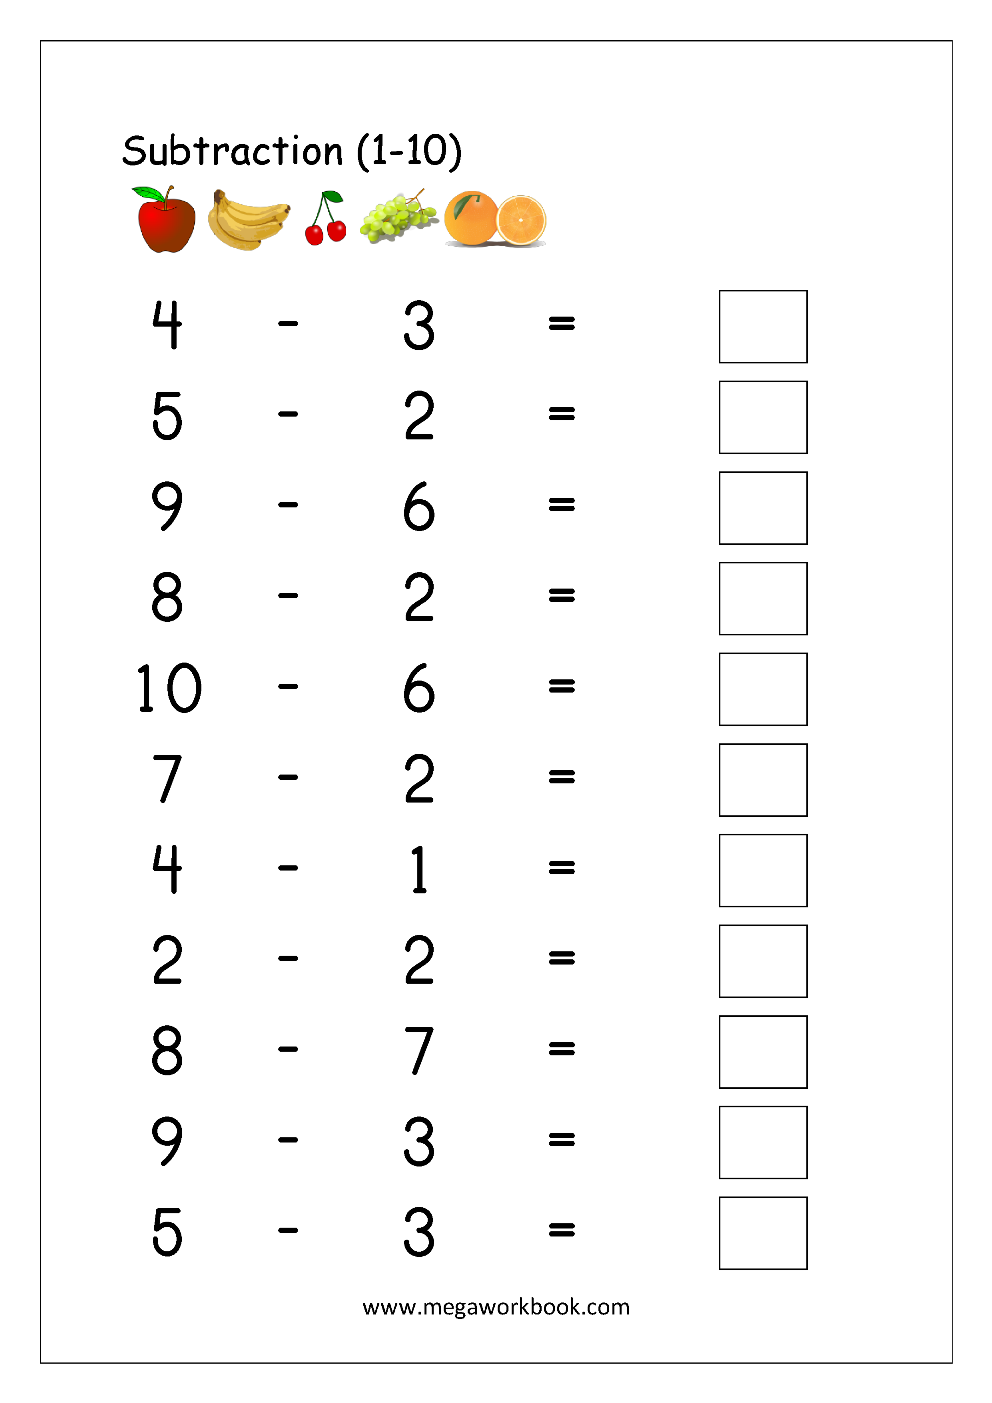 Free Printable Number Subtraction 1 10 Worksheets For Grade 1 And Kindergarten Subtraction With Pictures Objects To Cross Out Subtraction Using Number Line Megaworkbook - 13+ Subtraction Free Printable Kindergarten Math Worksheets Gif